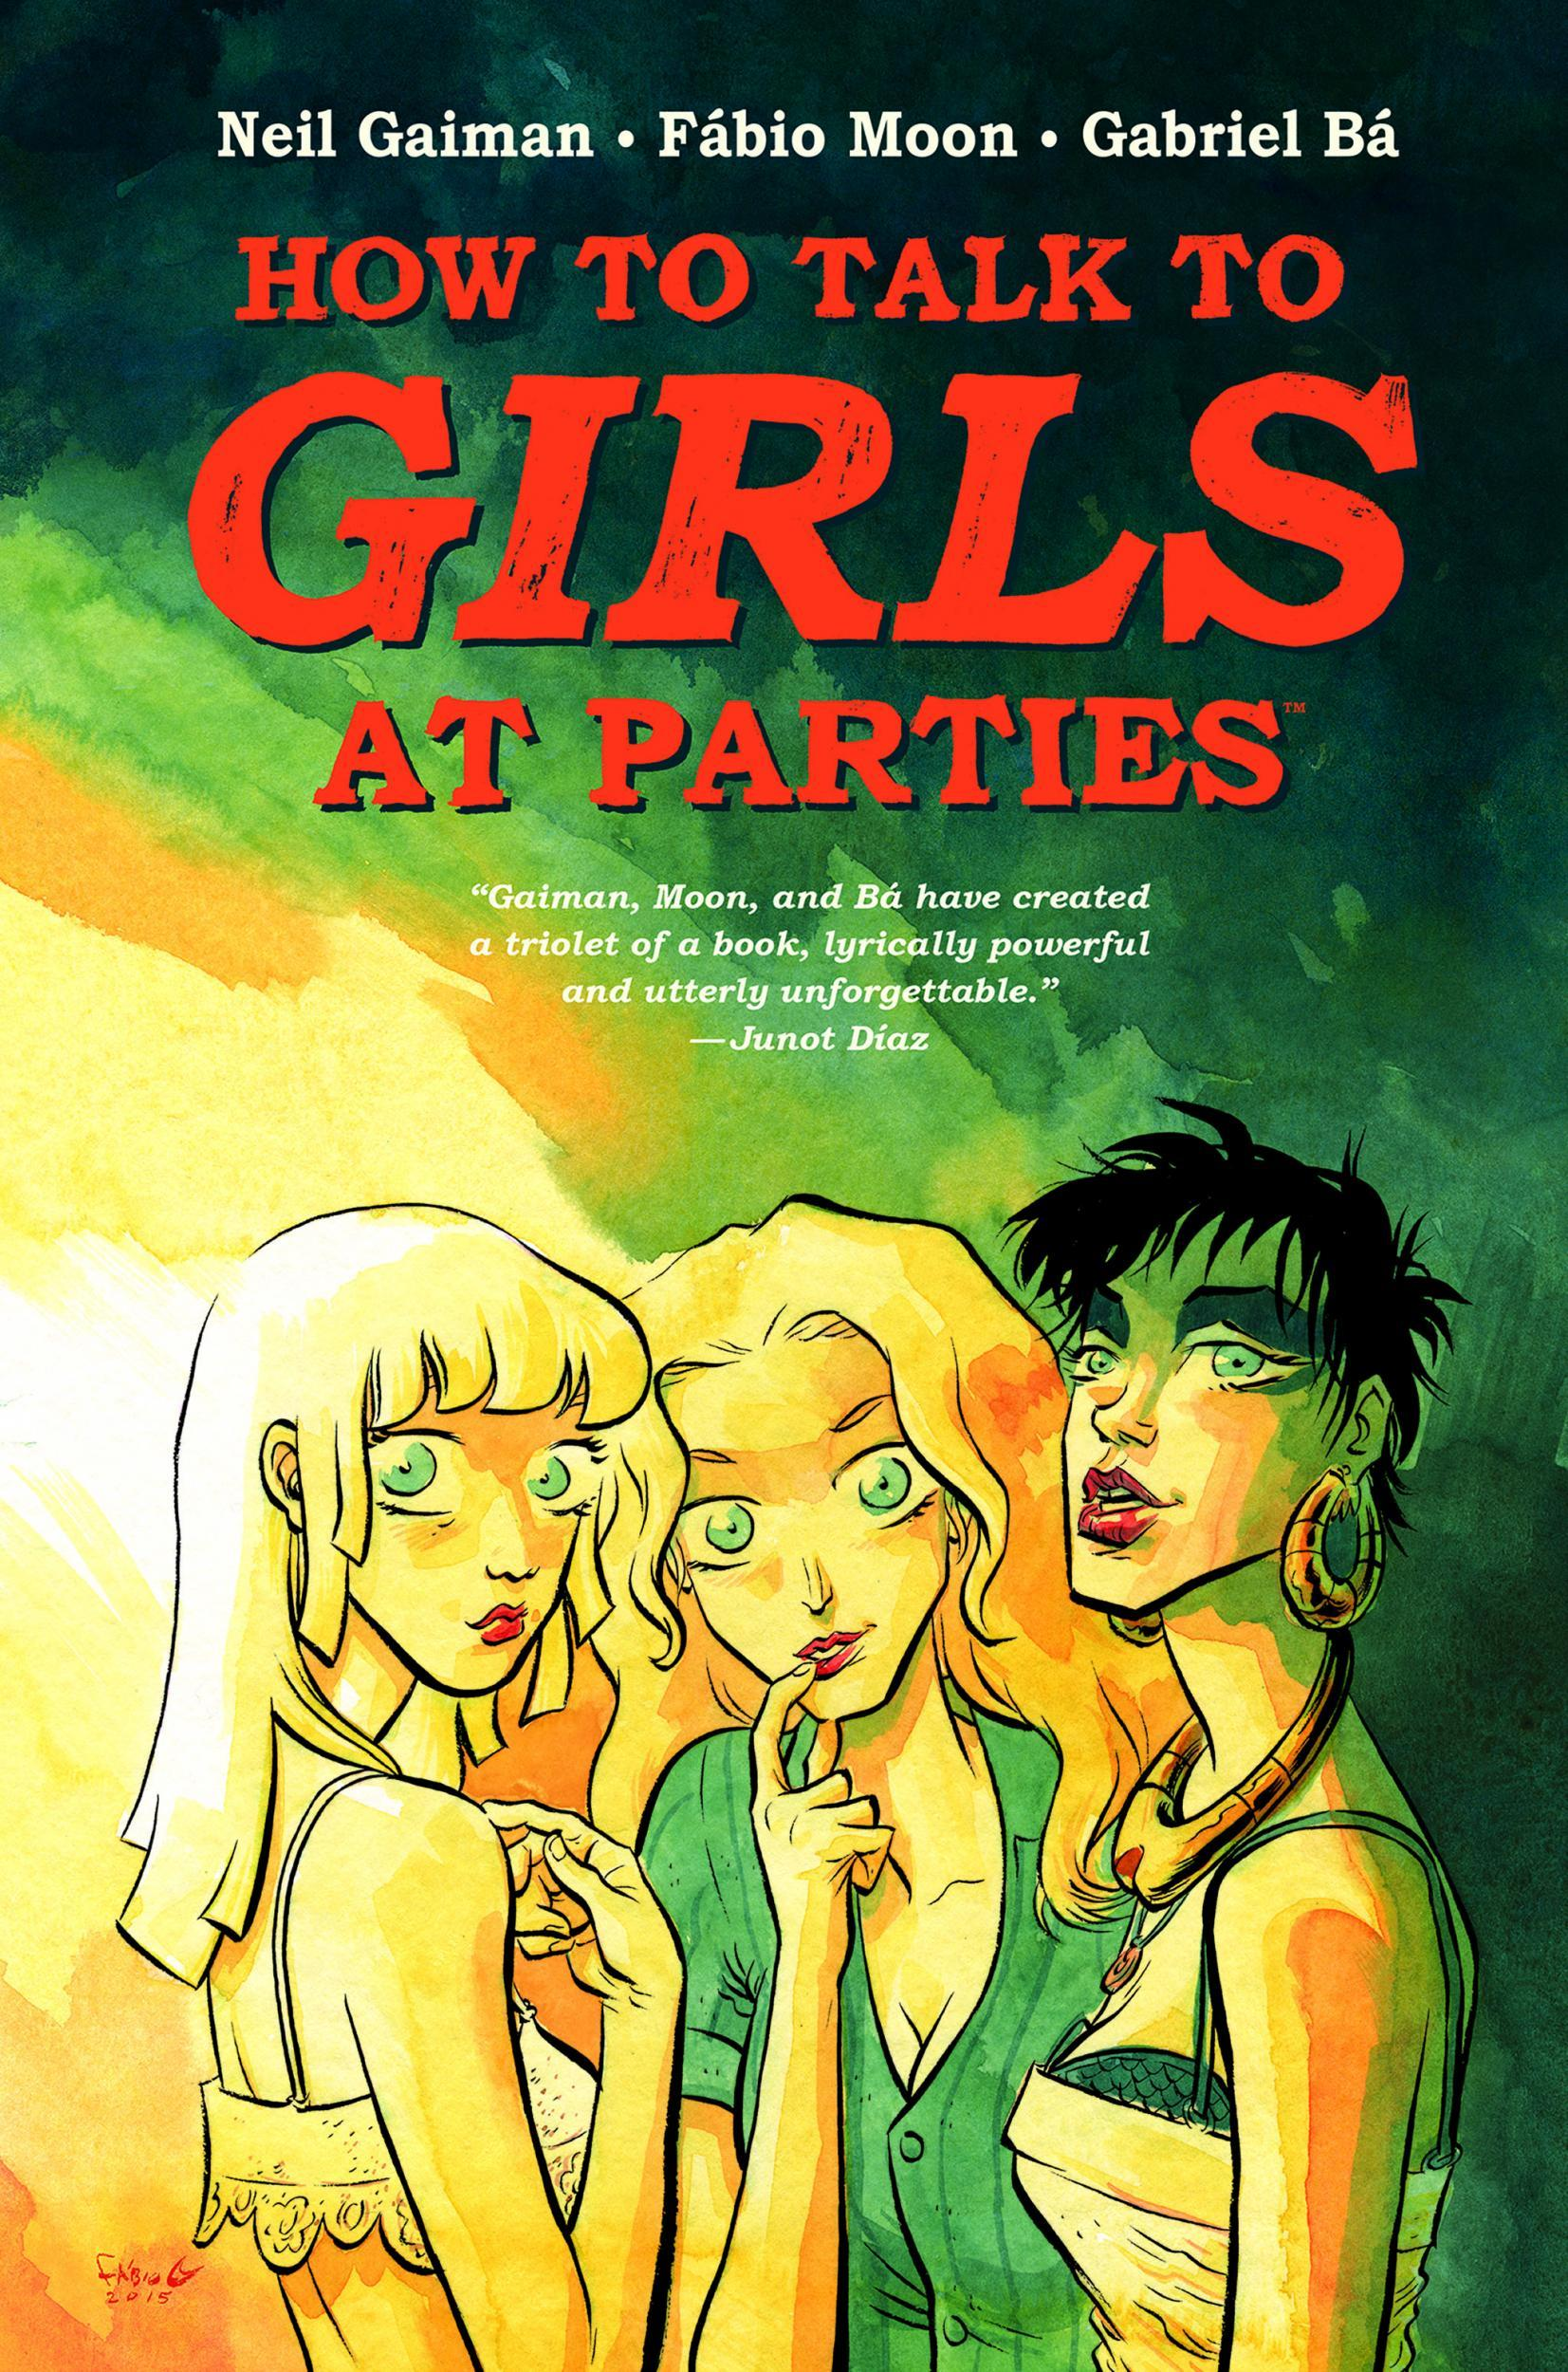 How To Talk To Girls At Parties, Neil Gaiman, Fabio Moon And Gabriel Ba,  Review: An Extraterrestrial Teen Romance In Punkera Croydon  The  Independent